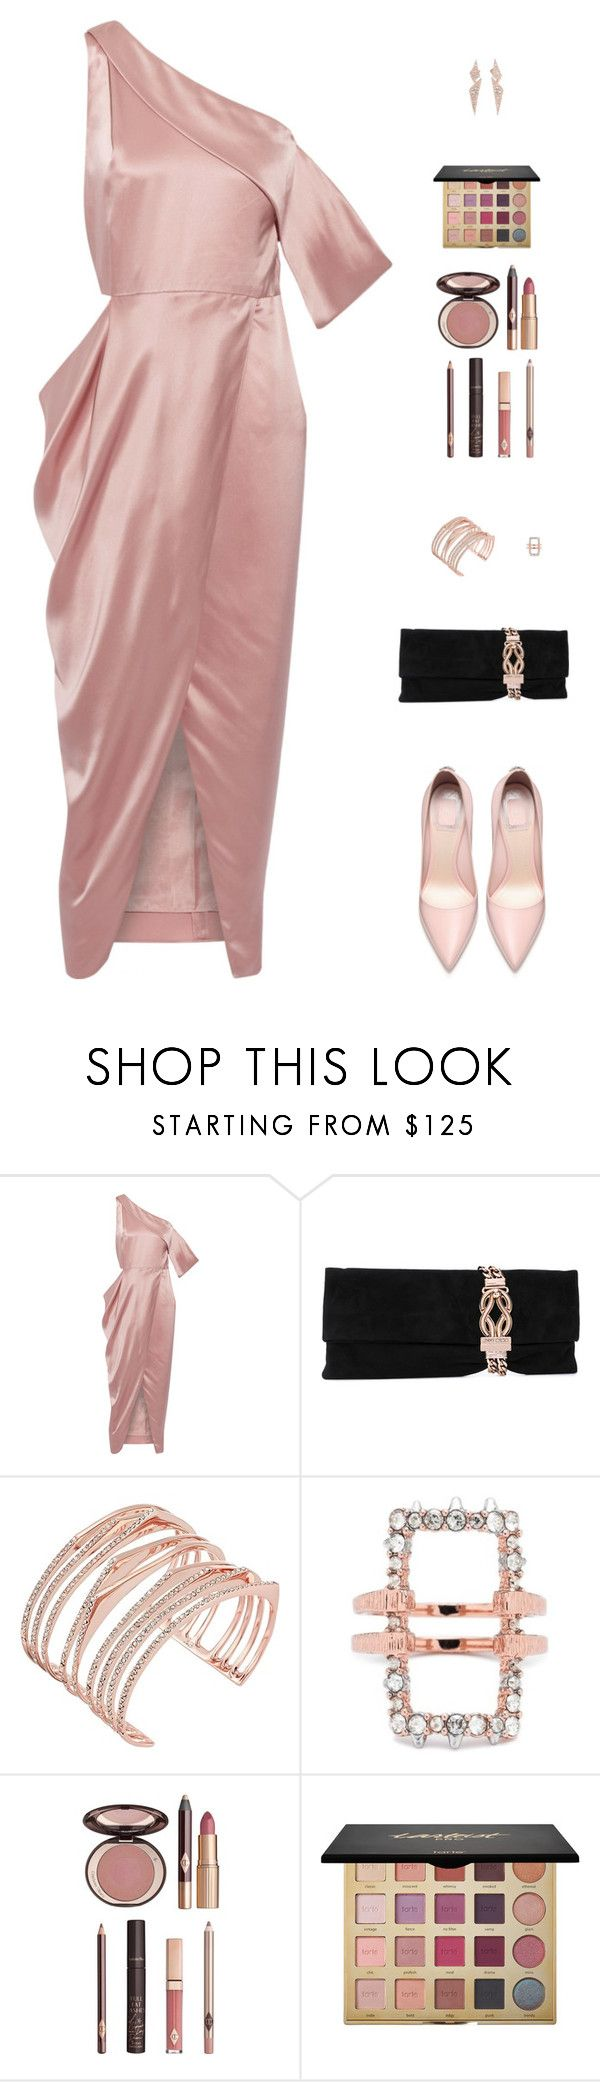 """""""Untitled #5011"""" by mdmsb on Polyvore featuring Michelle Mason, Jimmy Choo, Alexis Bittar, Charlotte Tilbury and tarte"""